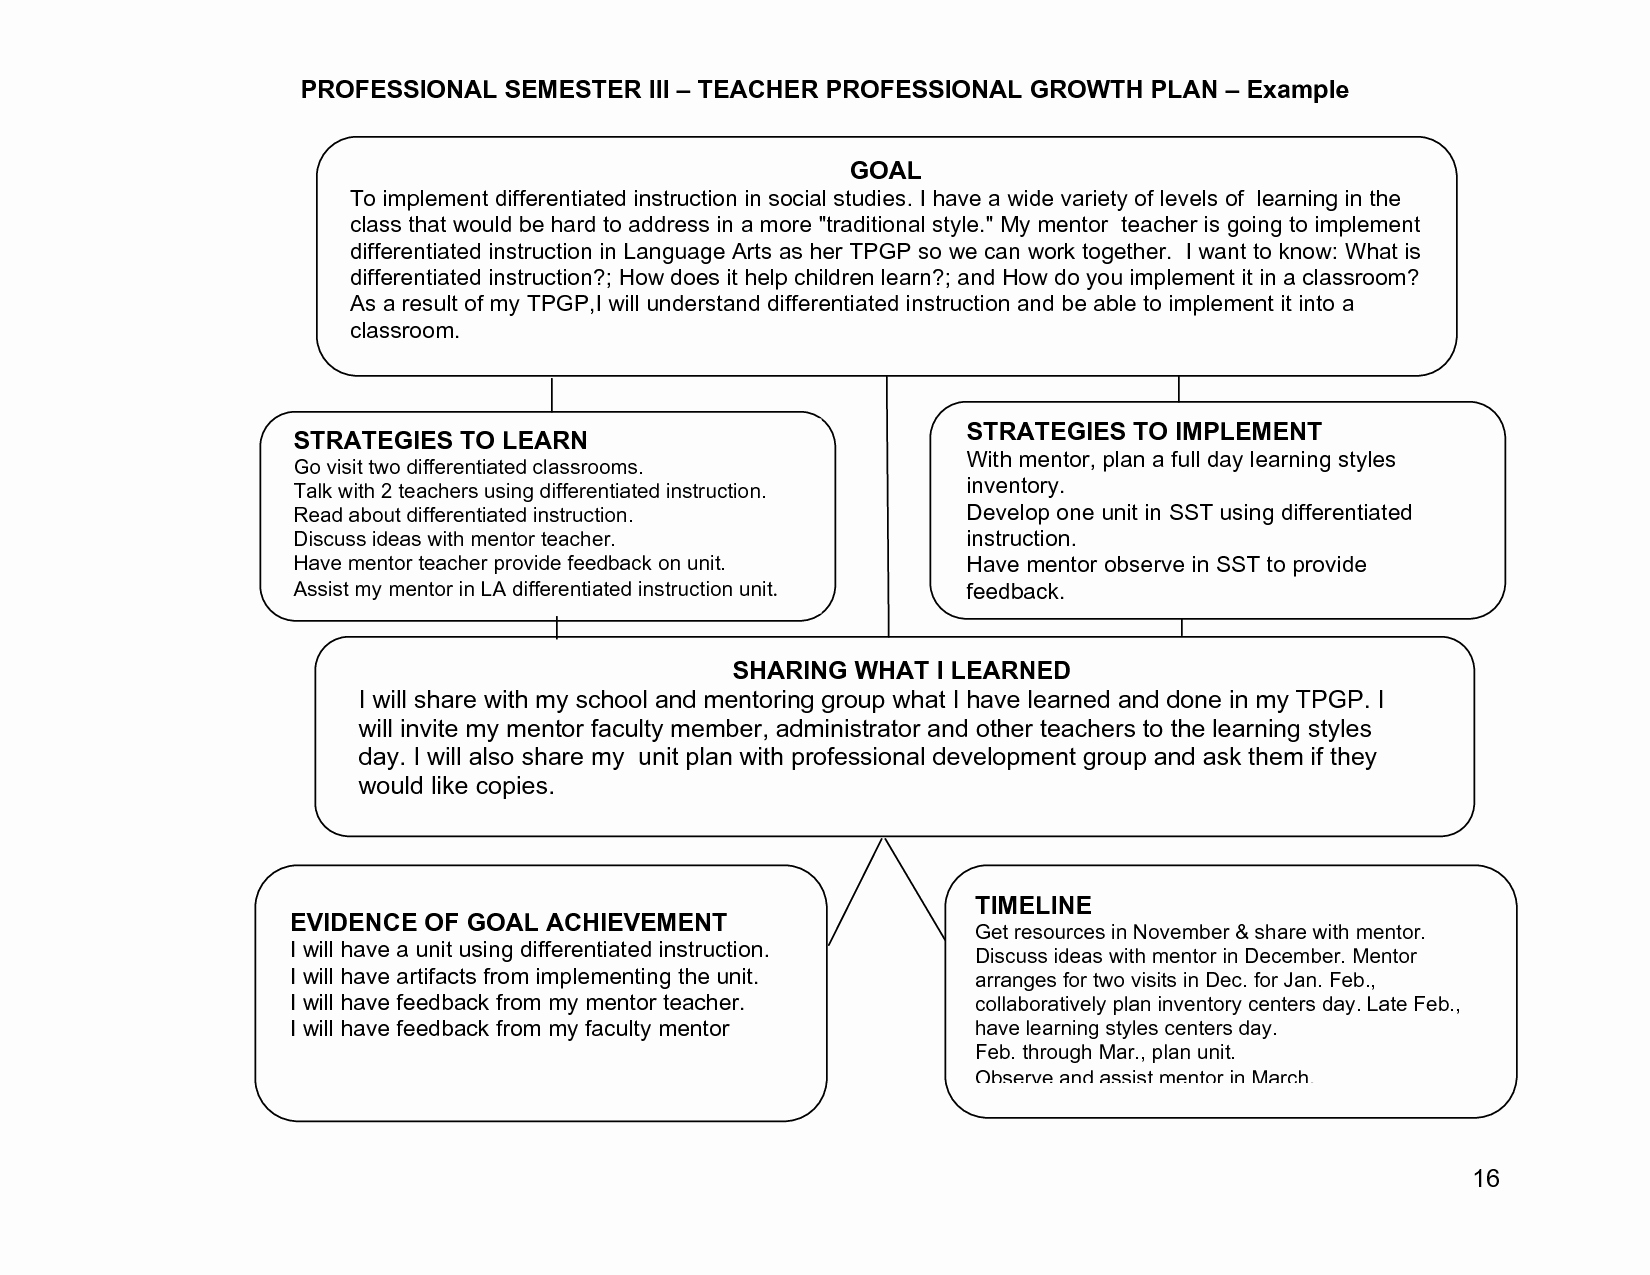 Professional Development Plan Sample Awesome Learning Plans or Goals for Teachers